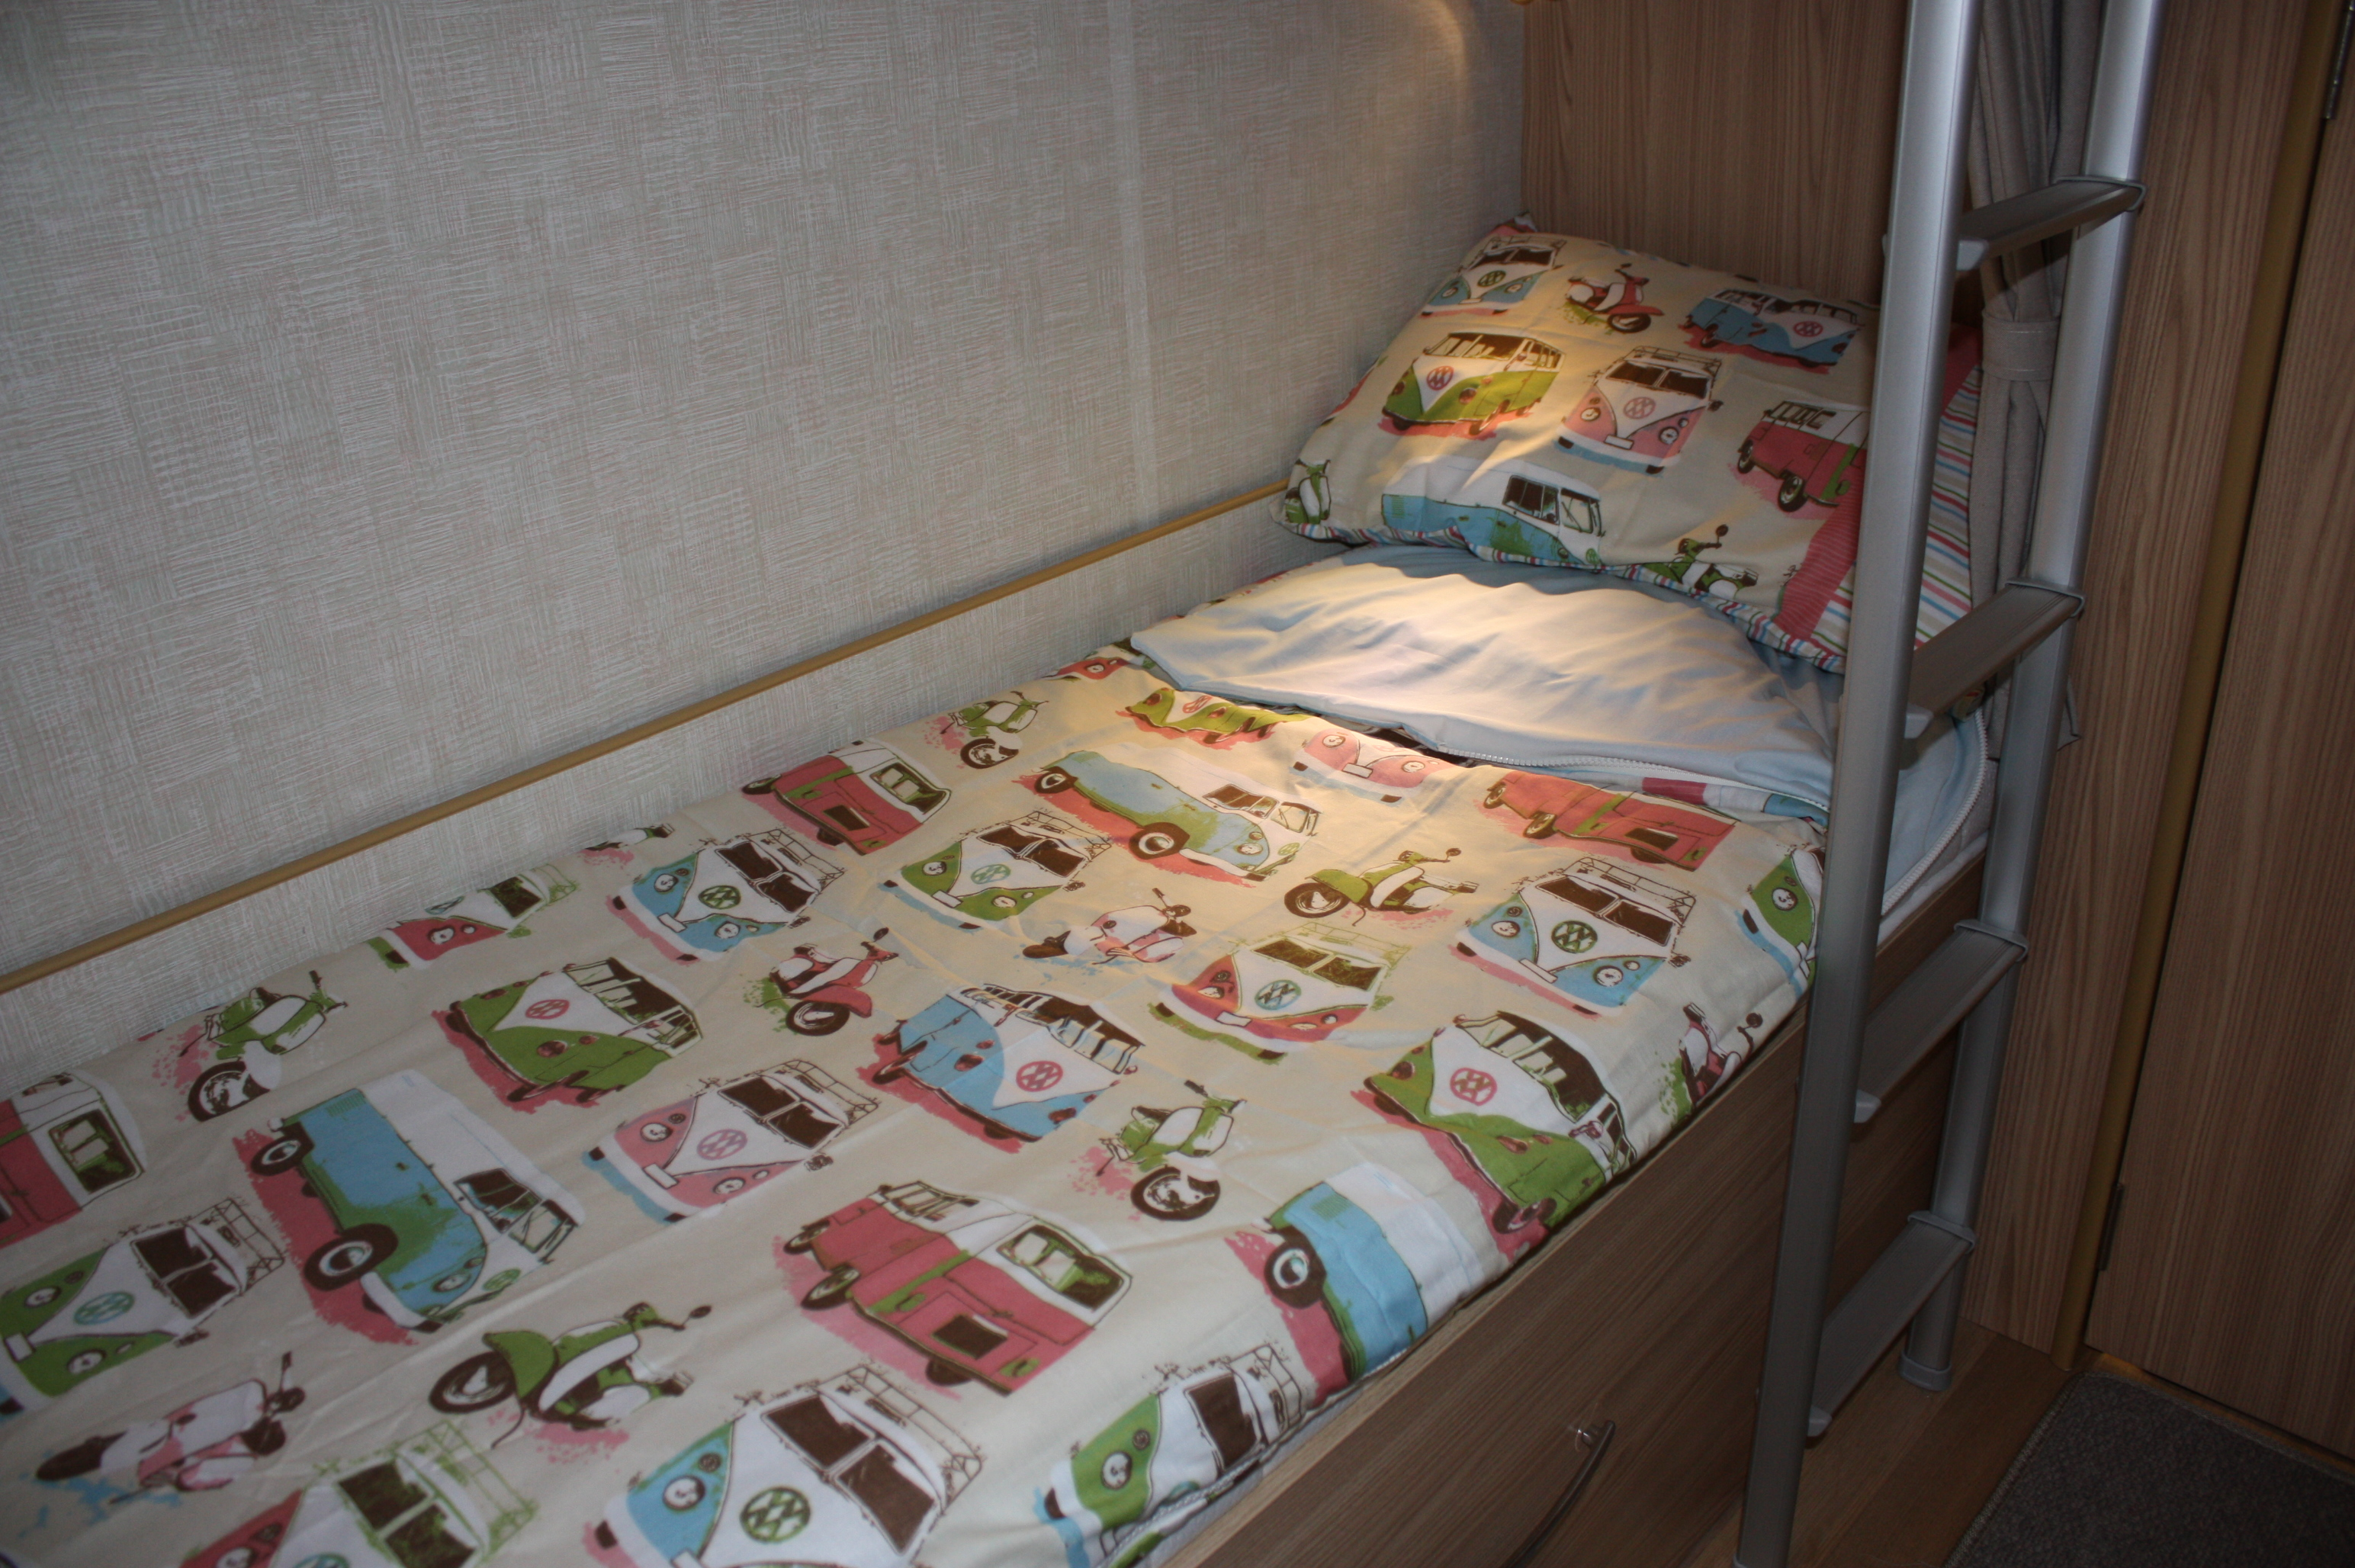 Snuglux Caravan Motorhome And Boat Bedding From Freedom Is